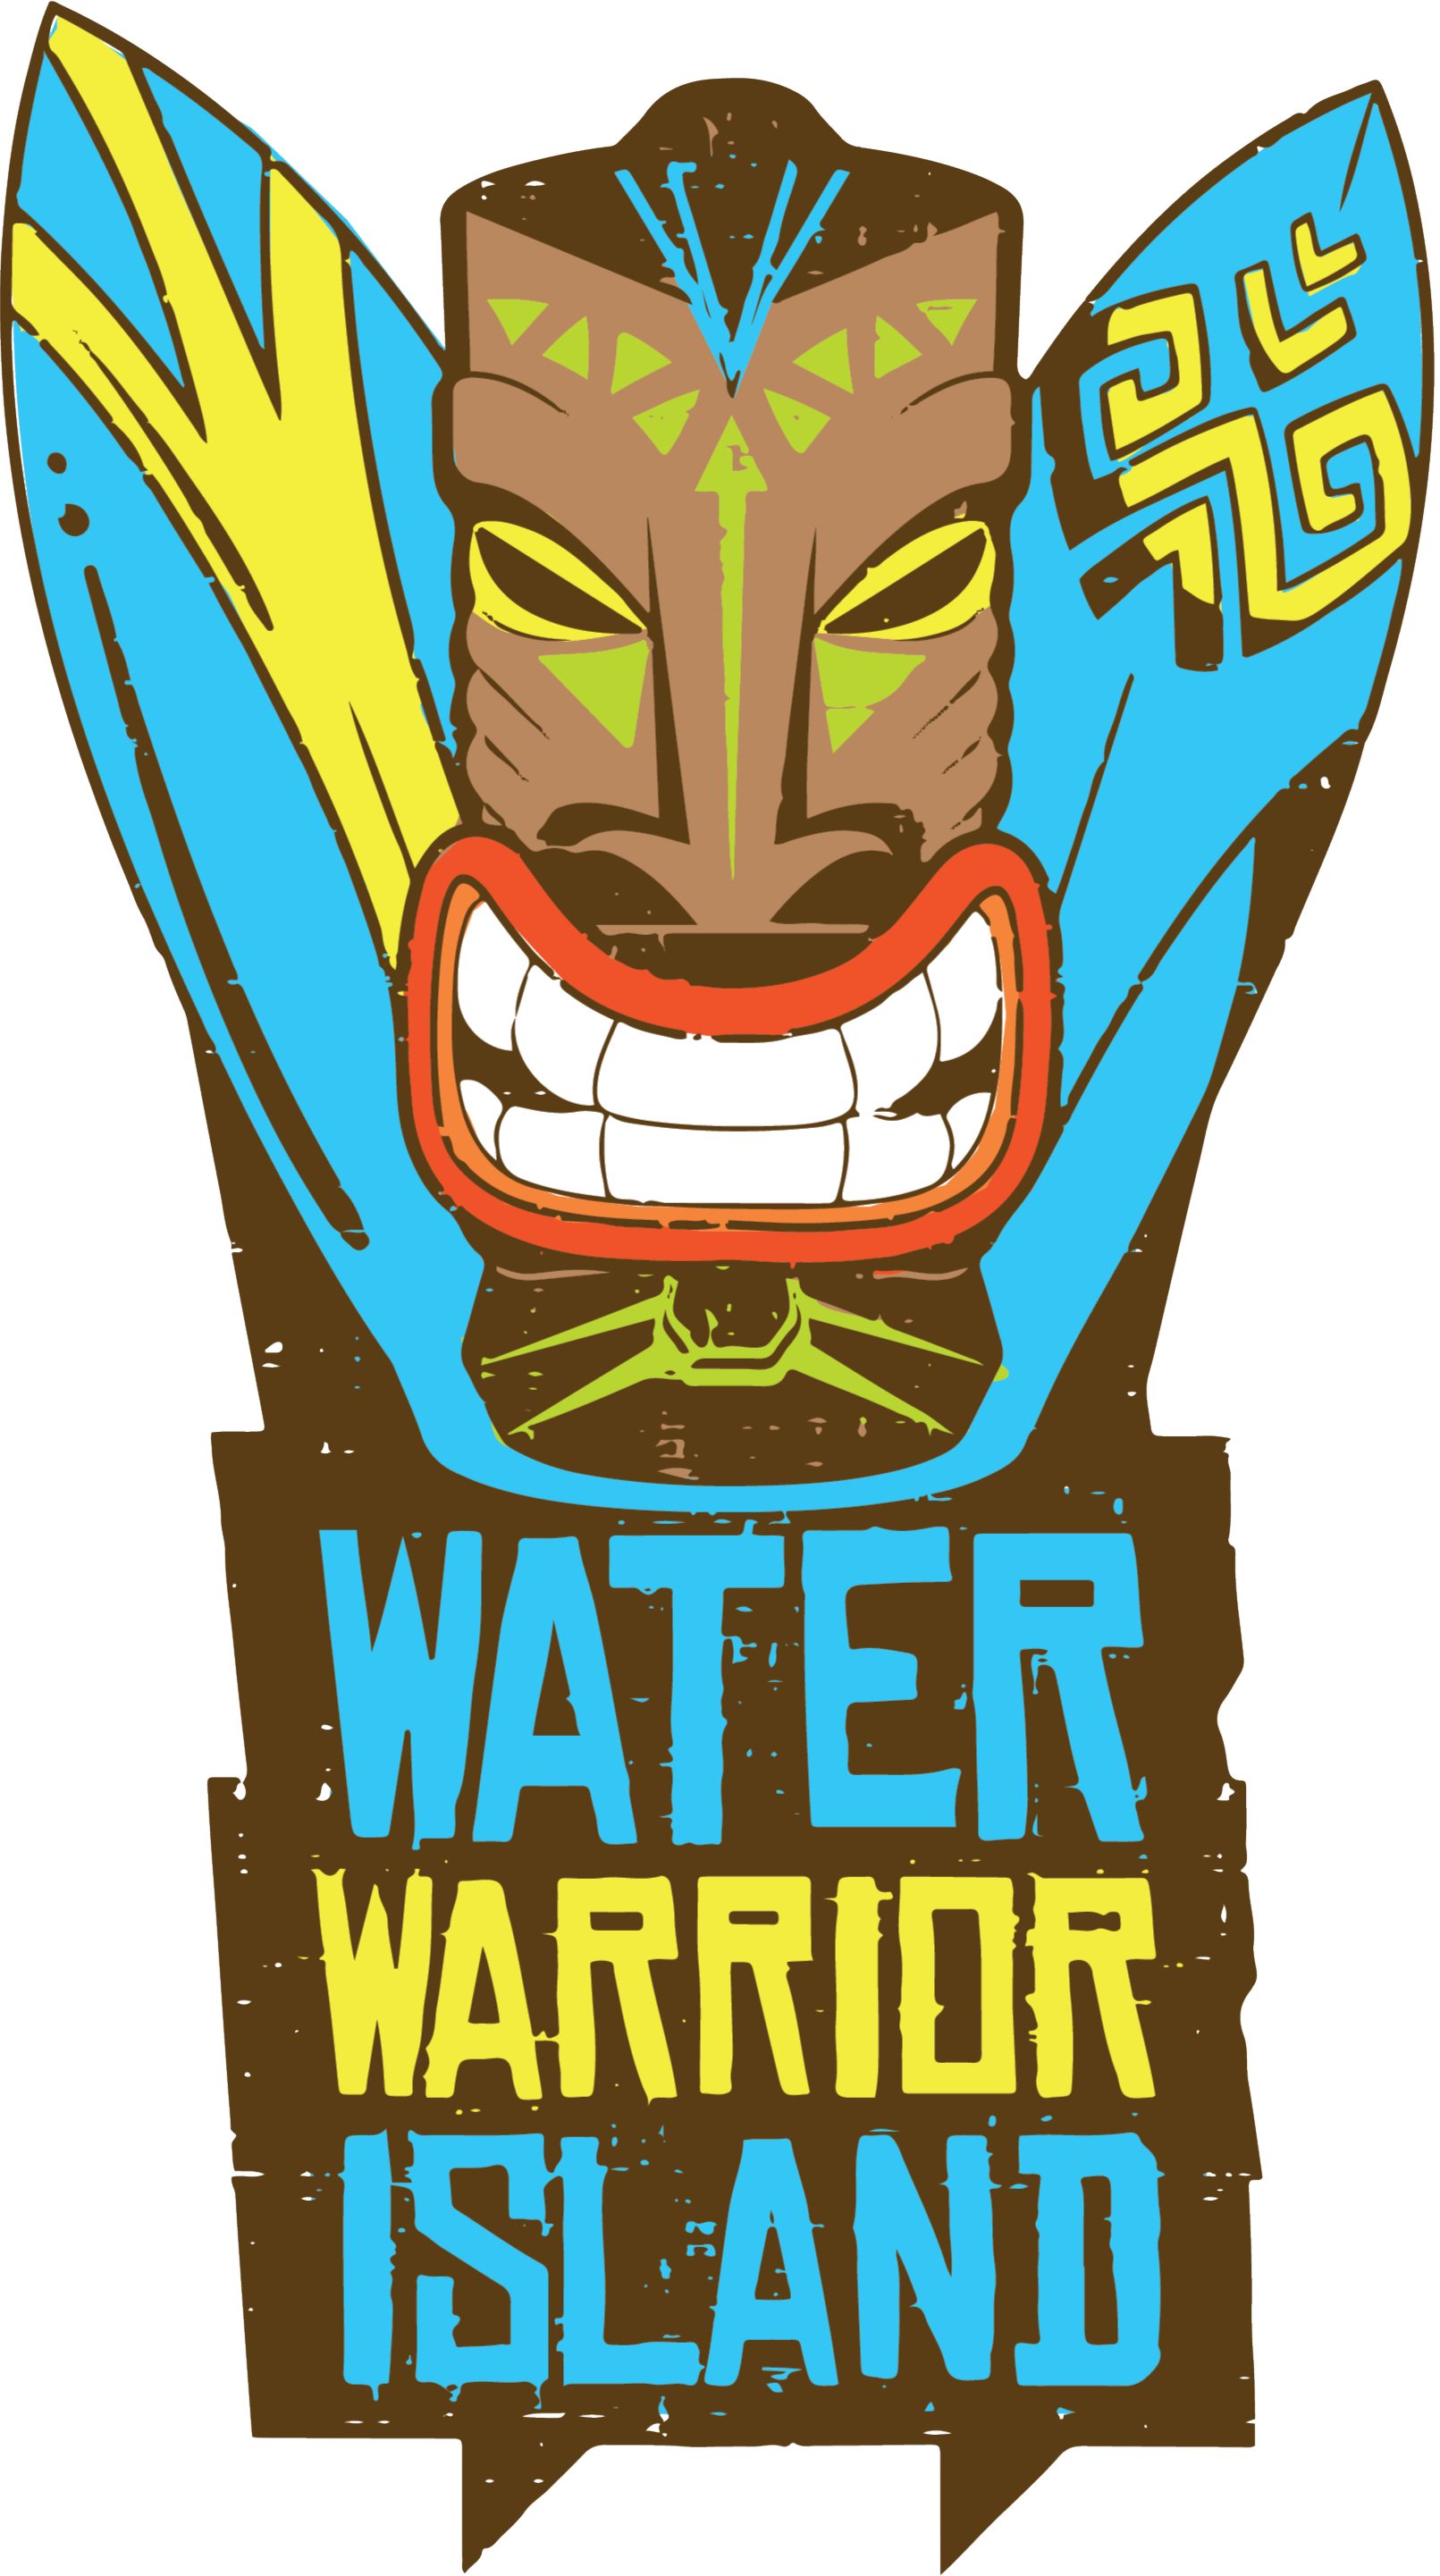 Warrior clipart island warrior. Water exhilarating summer fun